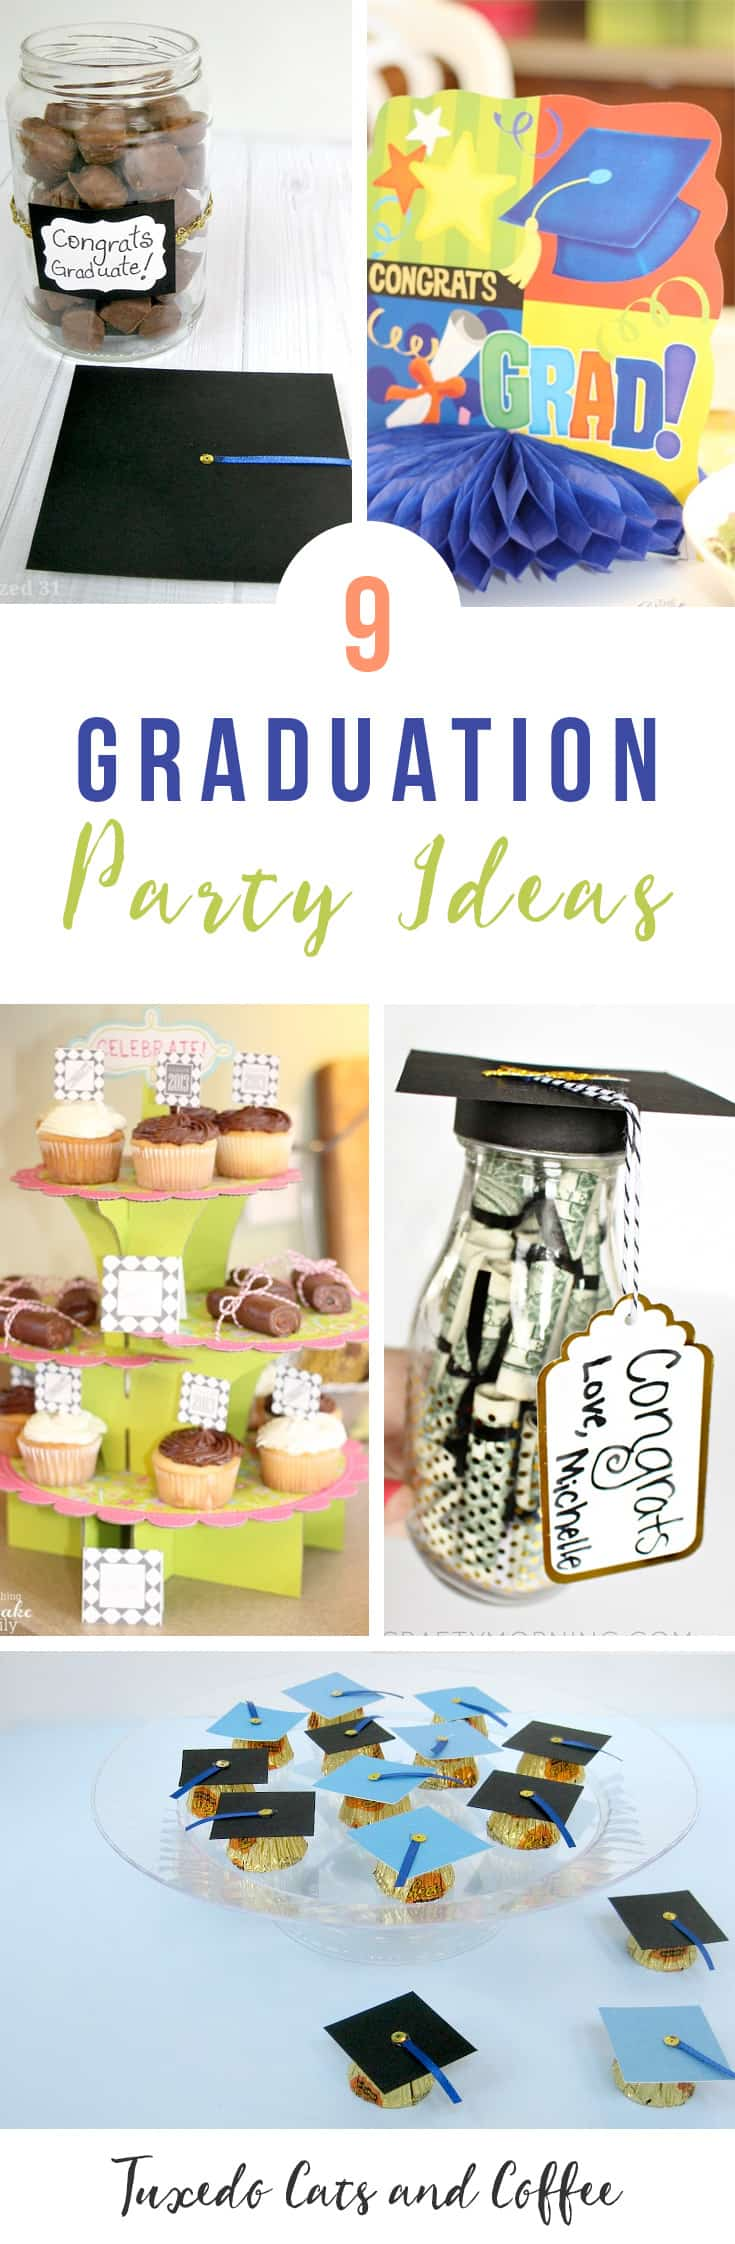 Graduation season is coming up - are you holding a graduation party for your grad? Here are 9 graduation party ideas to help you celebrate this special occasion.